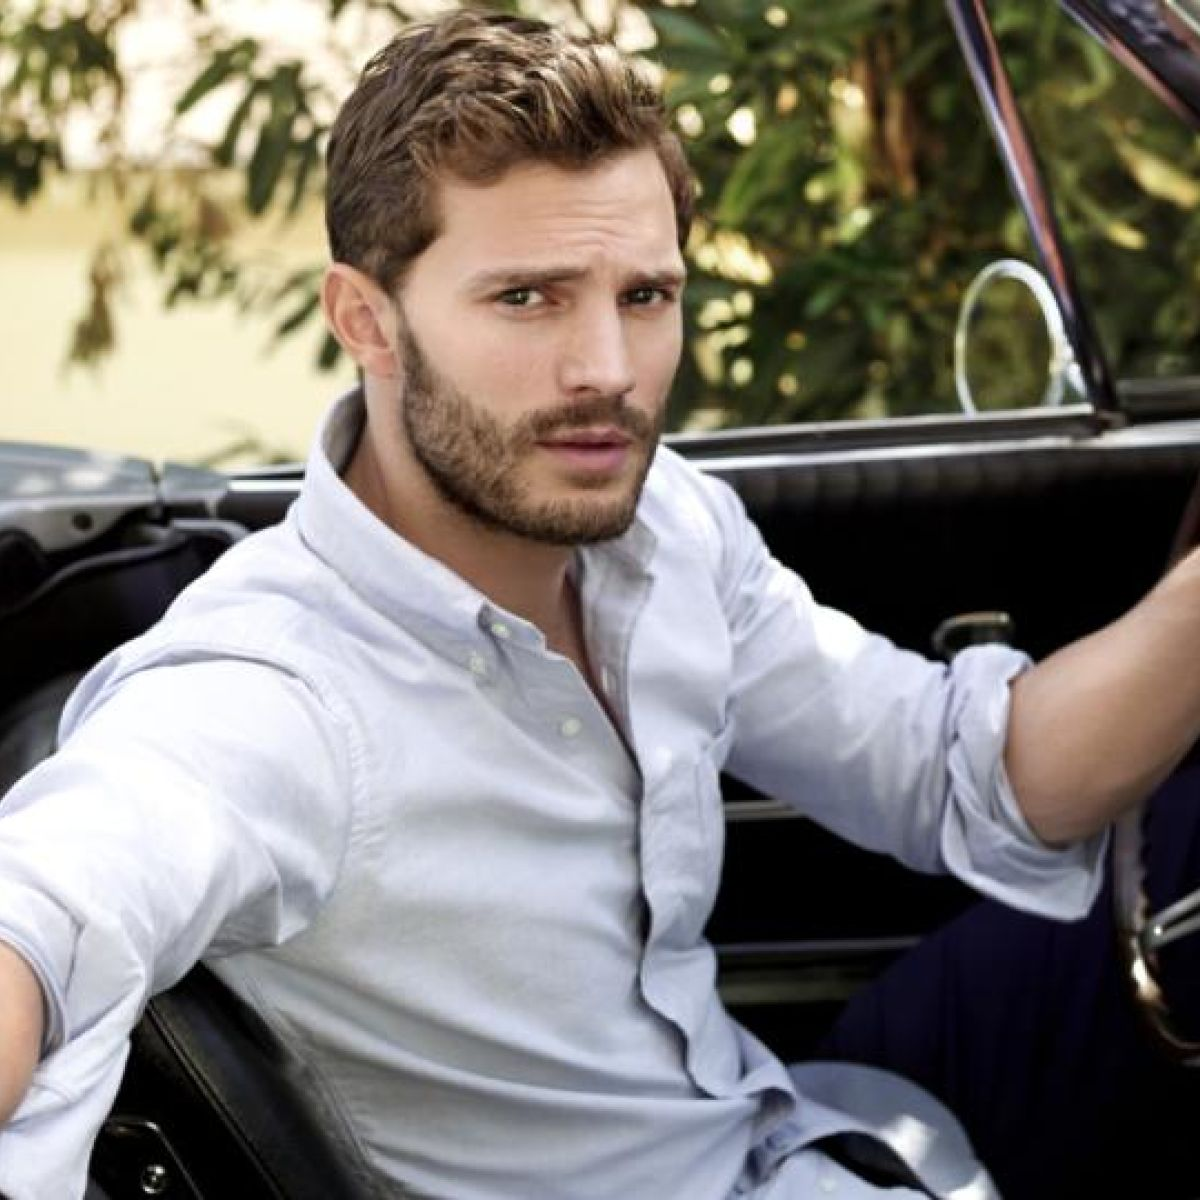 Jamie Dornan nudes (16 foto and video), Topless, Is a cute, Feet, swimsuit 2020